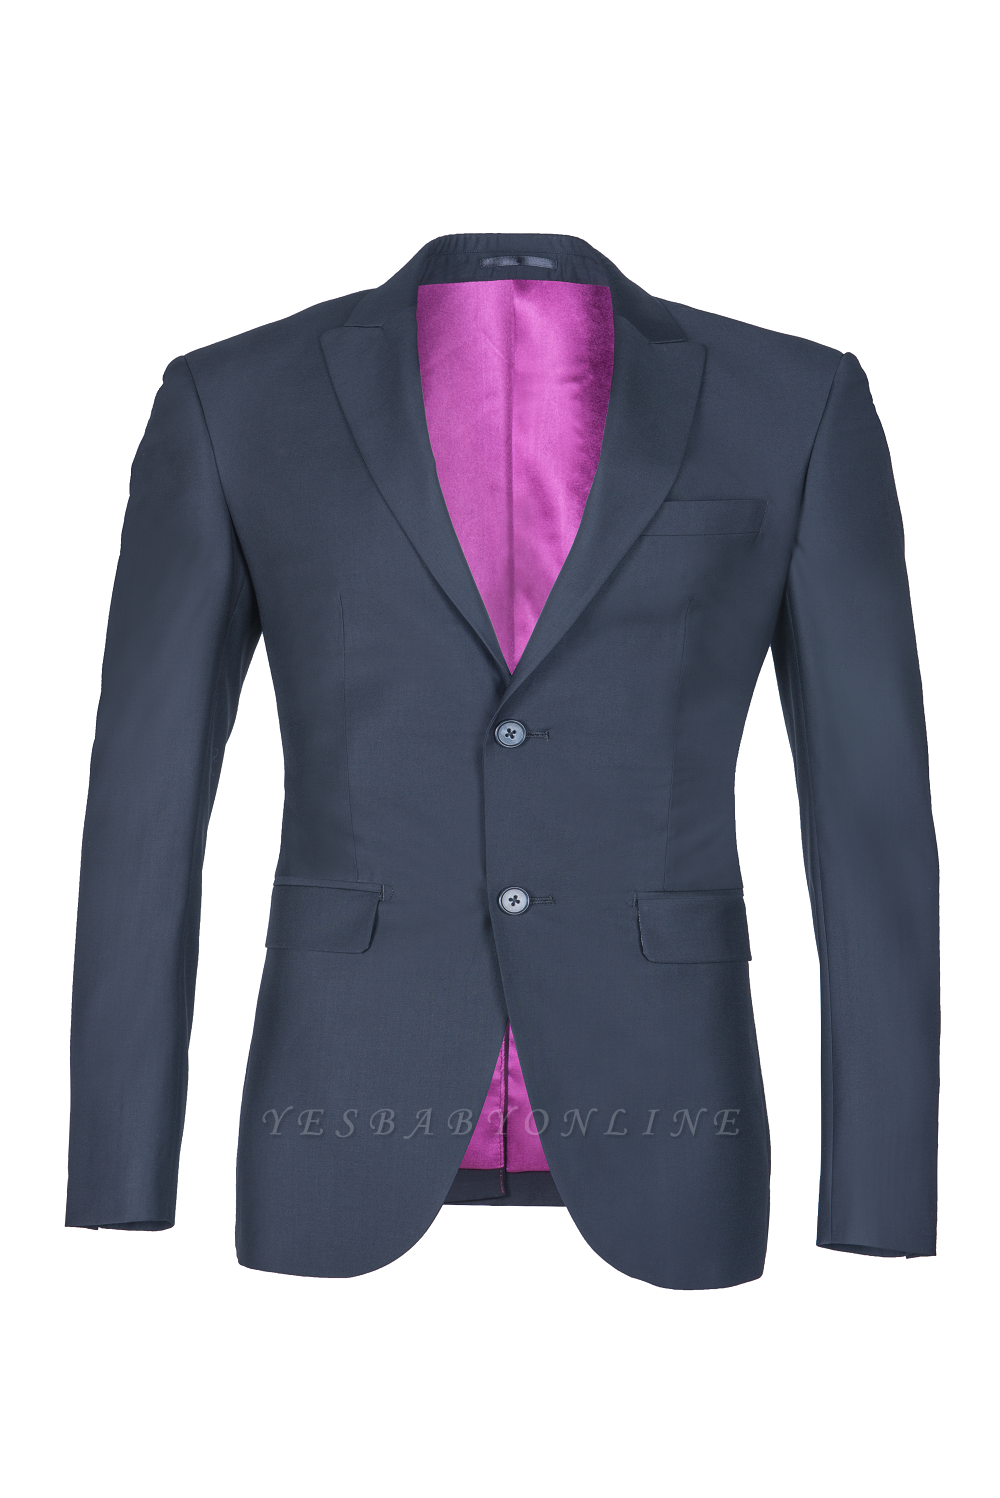 Custom Made Single Breasted Peak Lapel Dark Navy Best Men Groomsmen